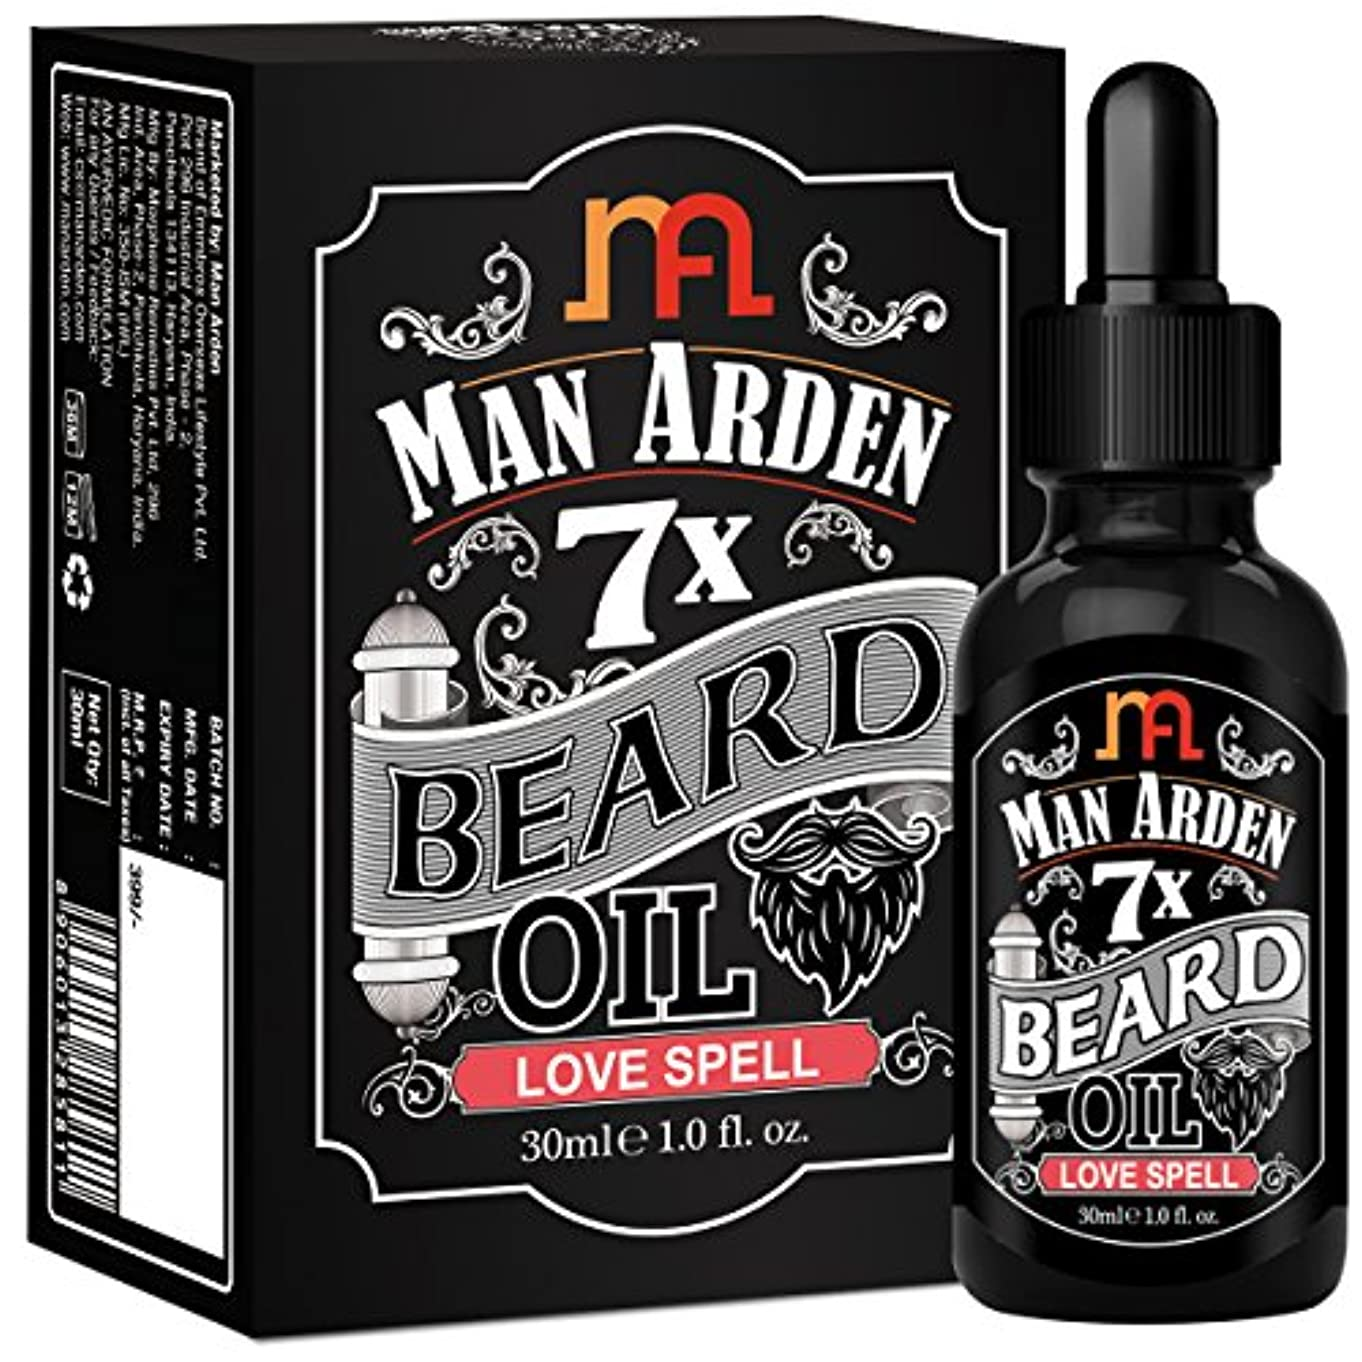 超音速洪水仕えるMan Arden 7X Beard Oil 30ml (Love Spell) - 7 Premium Oils Blend For Beard Growth & Nourishment